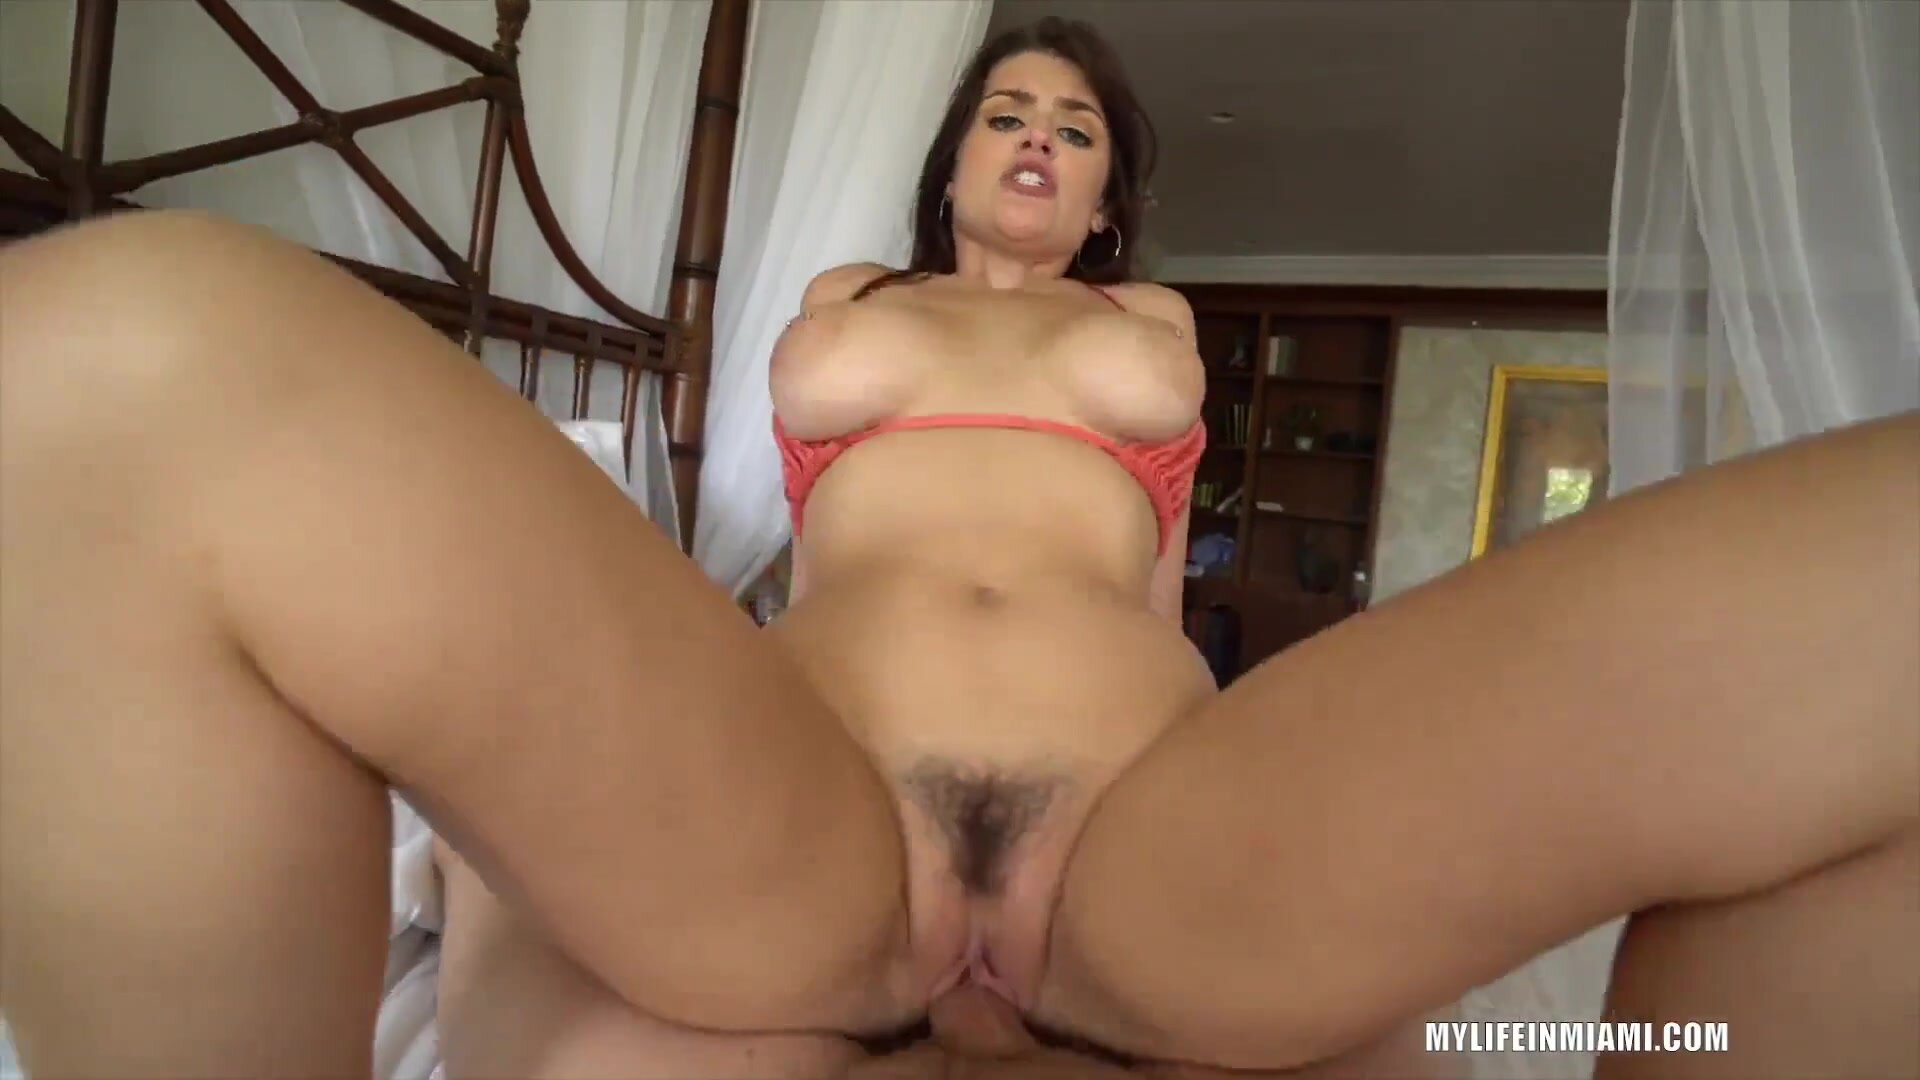 Michele James Creampie On Vacation - My Life In Mimai